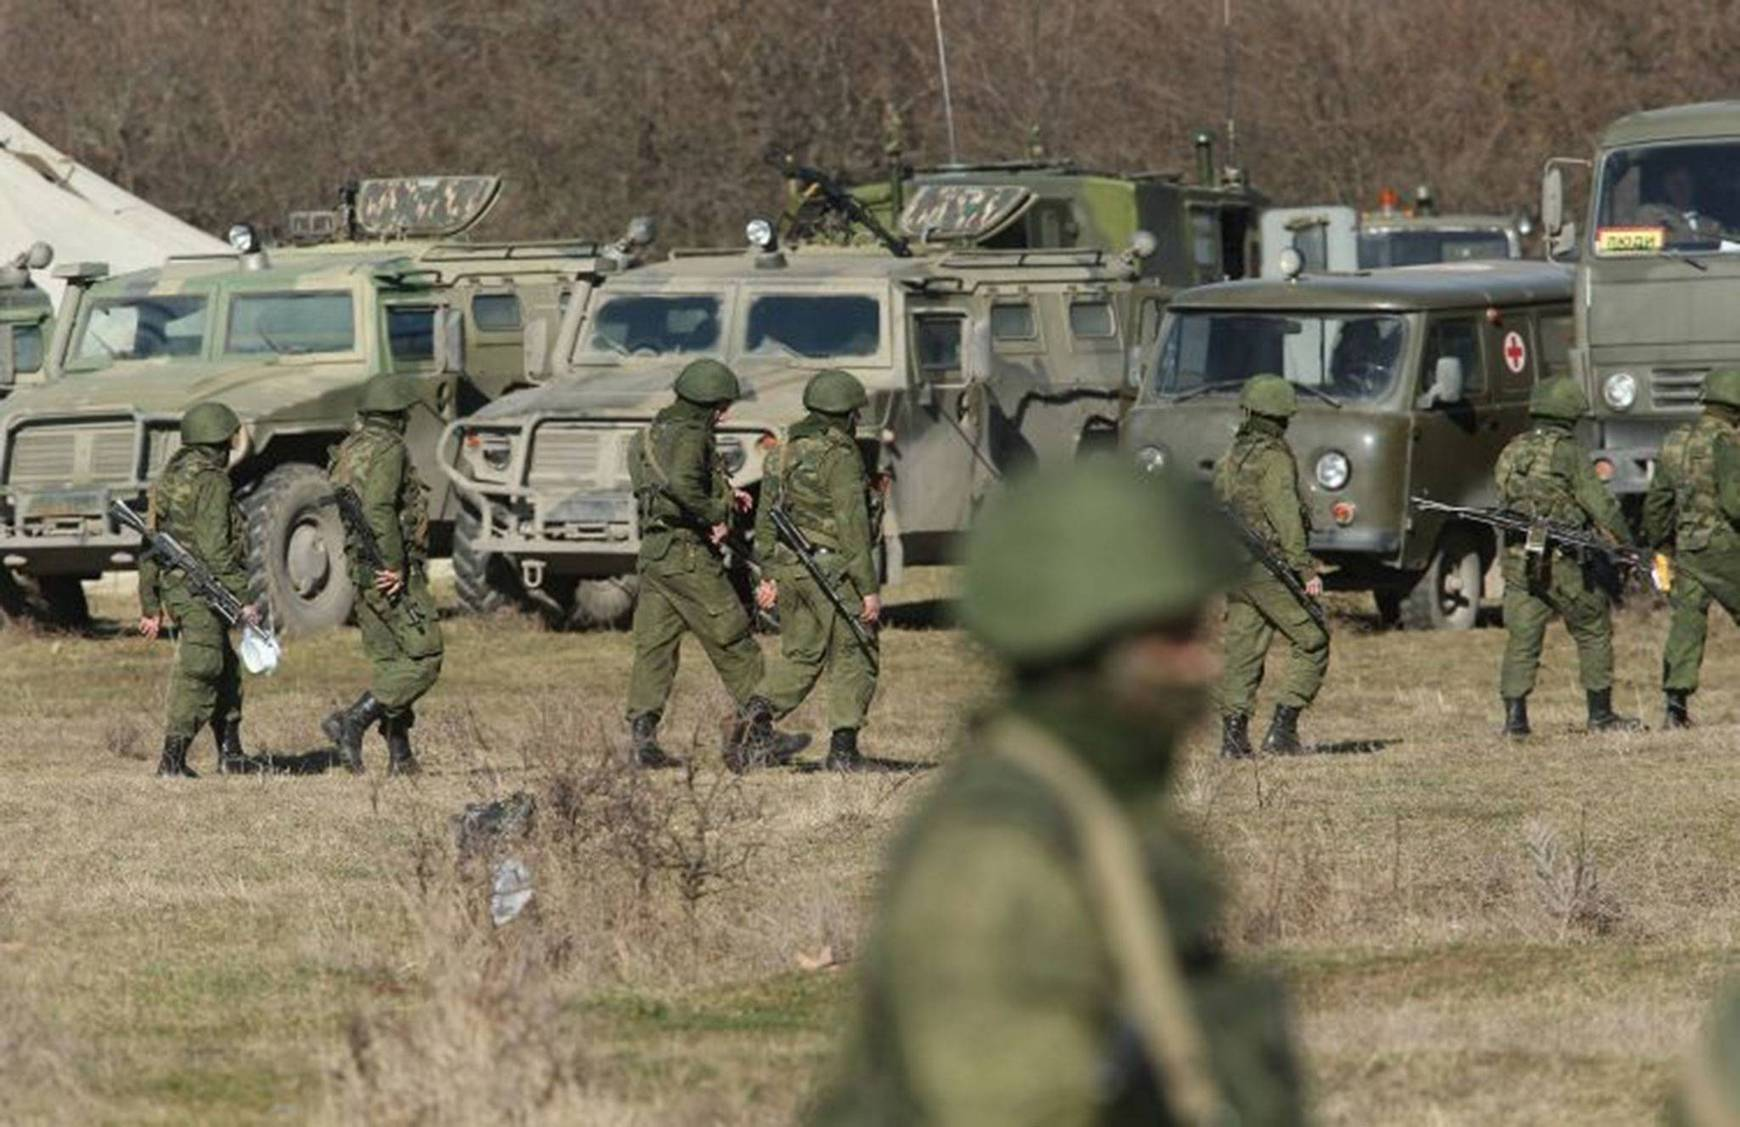 Ukraine latest: Armed men seize defence post in the Crimean city of Sevastopol